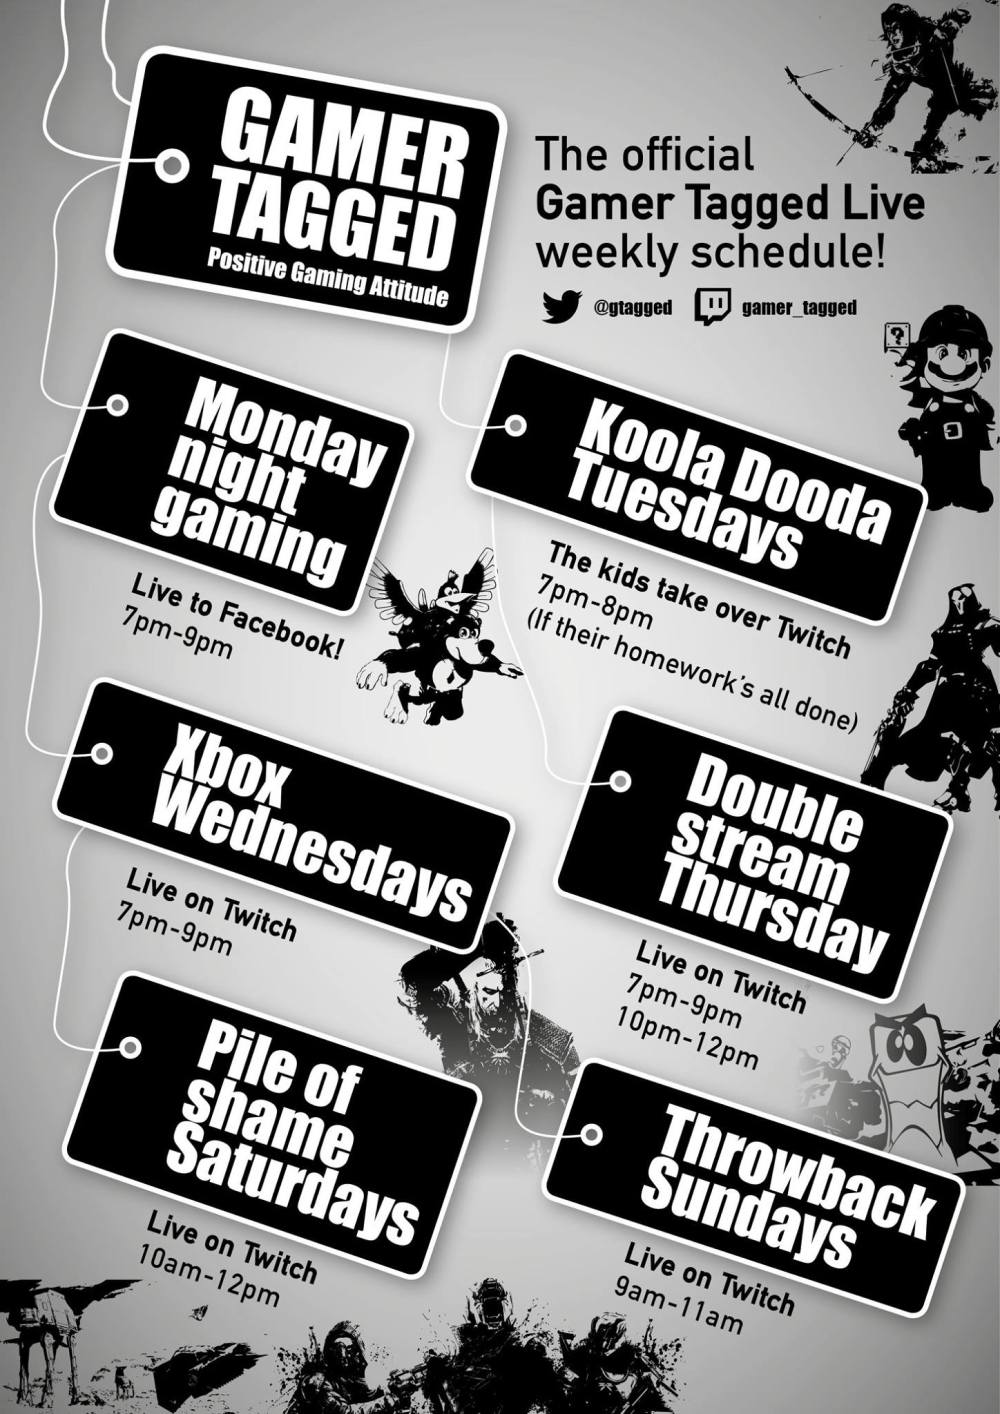 gamer-tagged-streaming-schedule